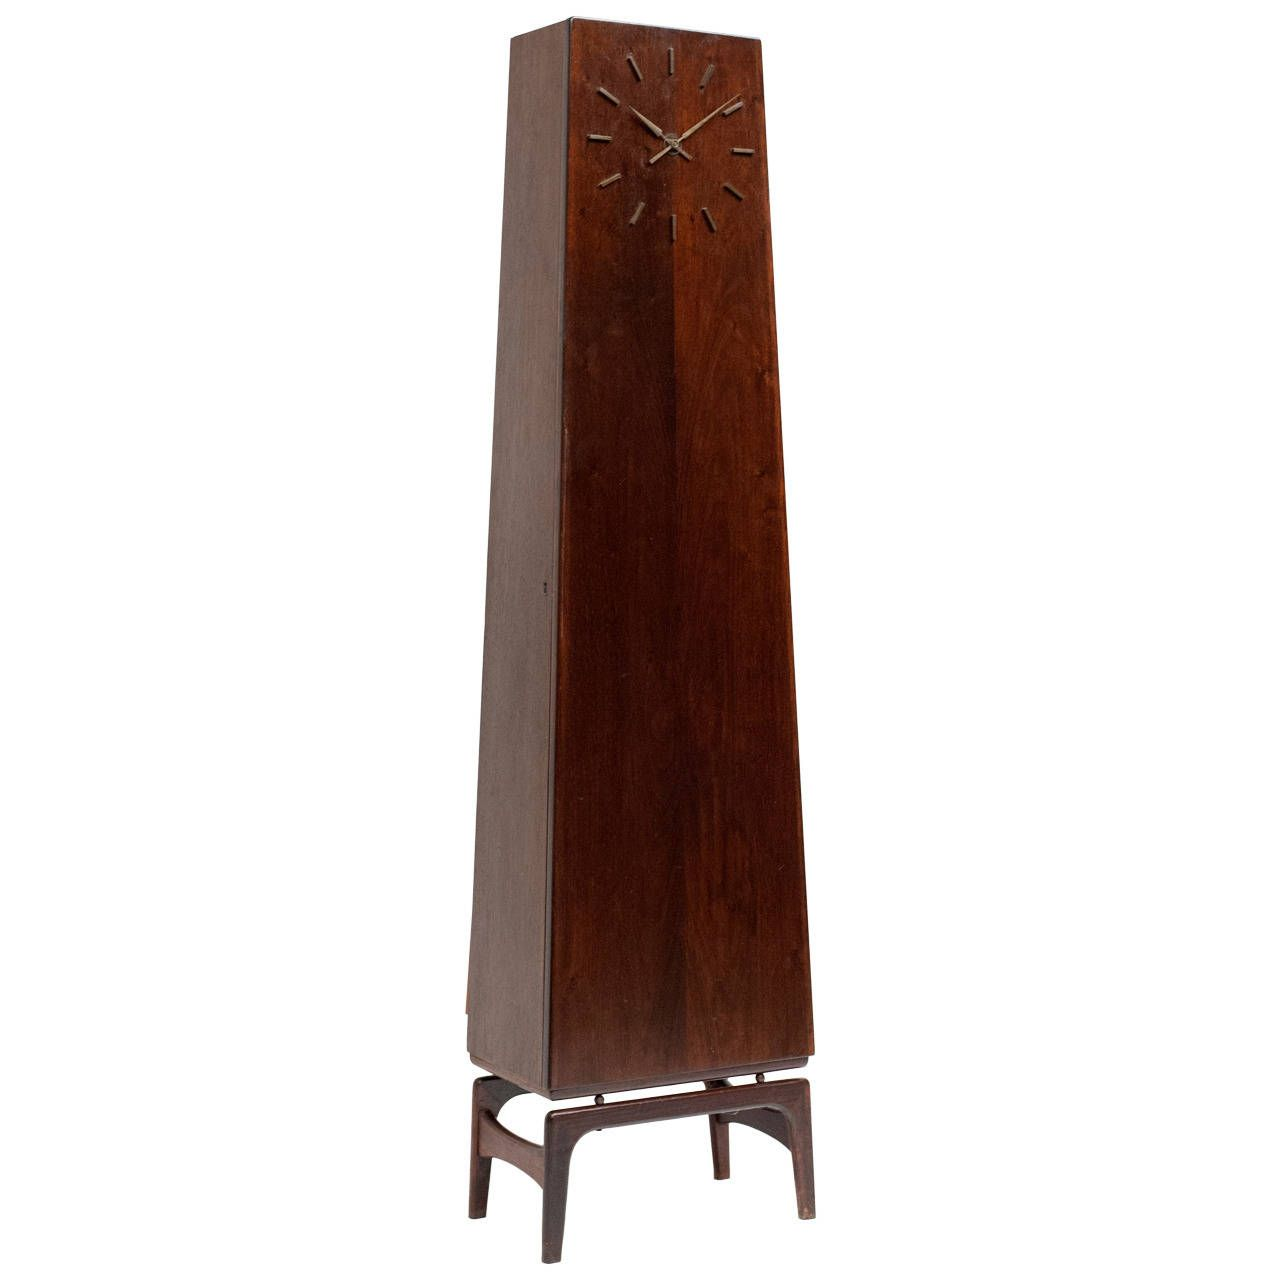 hidden bar furniture. Danish Modern Rosewood Grandfather Clock With Hidden Bar Furniture